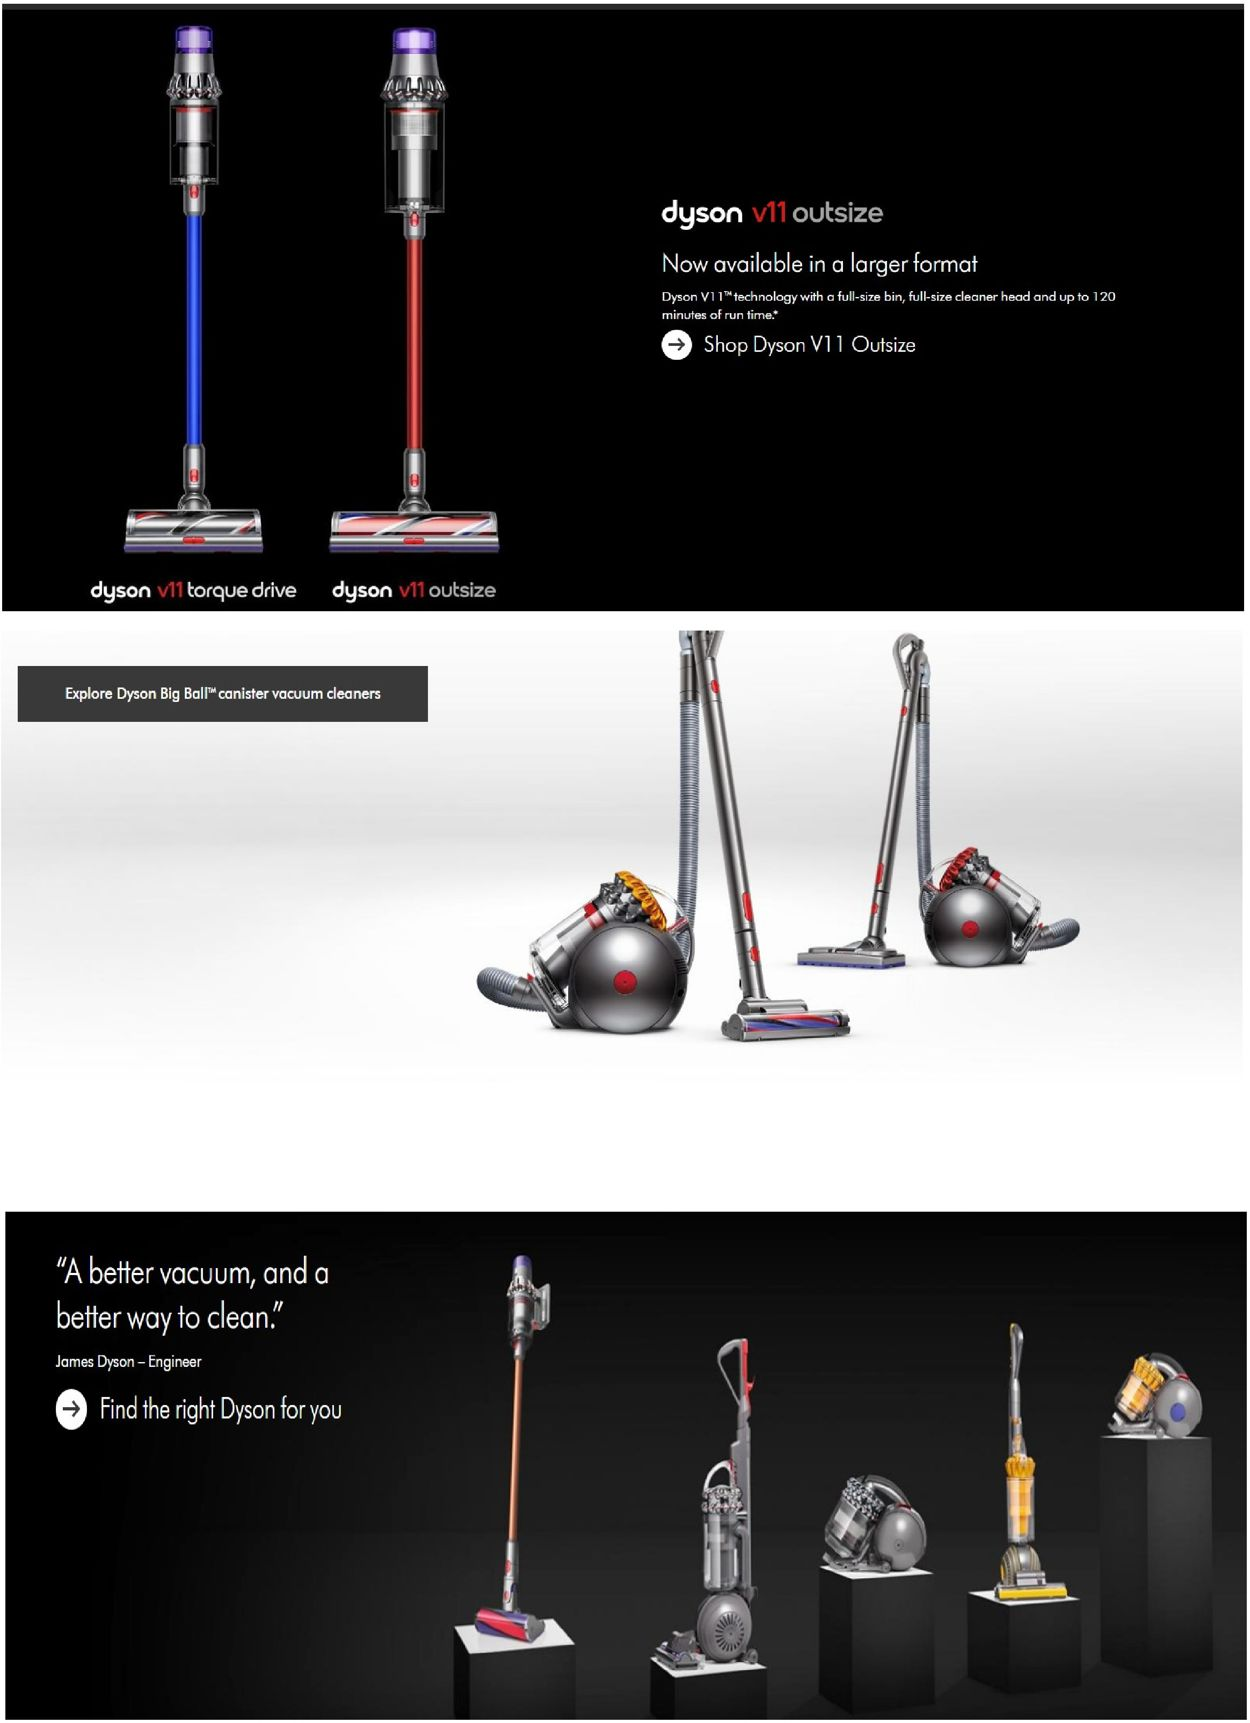 Dyson Black Friday 2020 Current weekly ad 11/20 - 11/26/2020 [5] -  frequent-ads.com